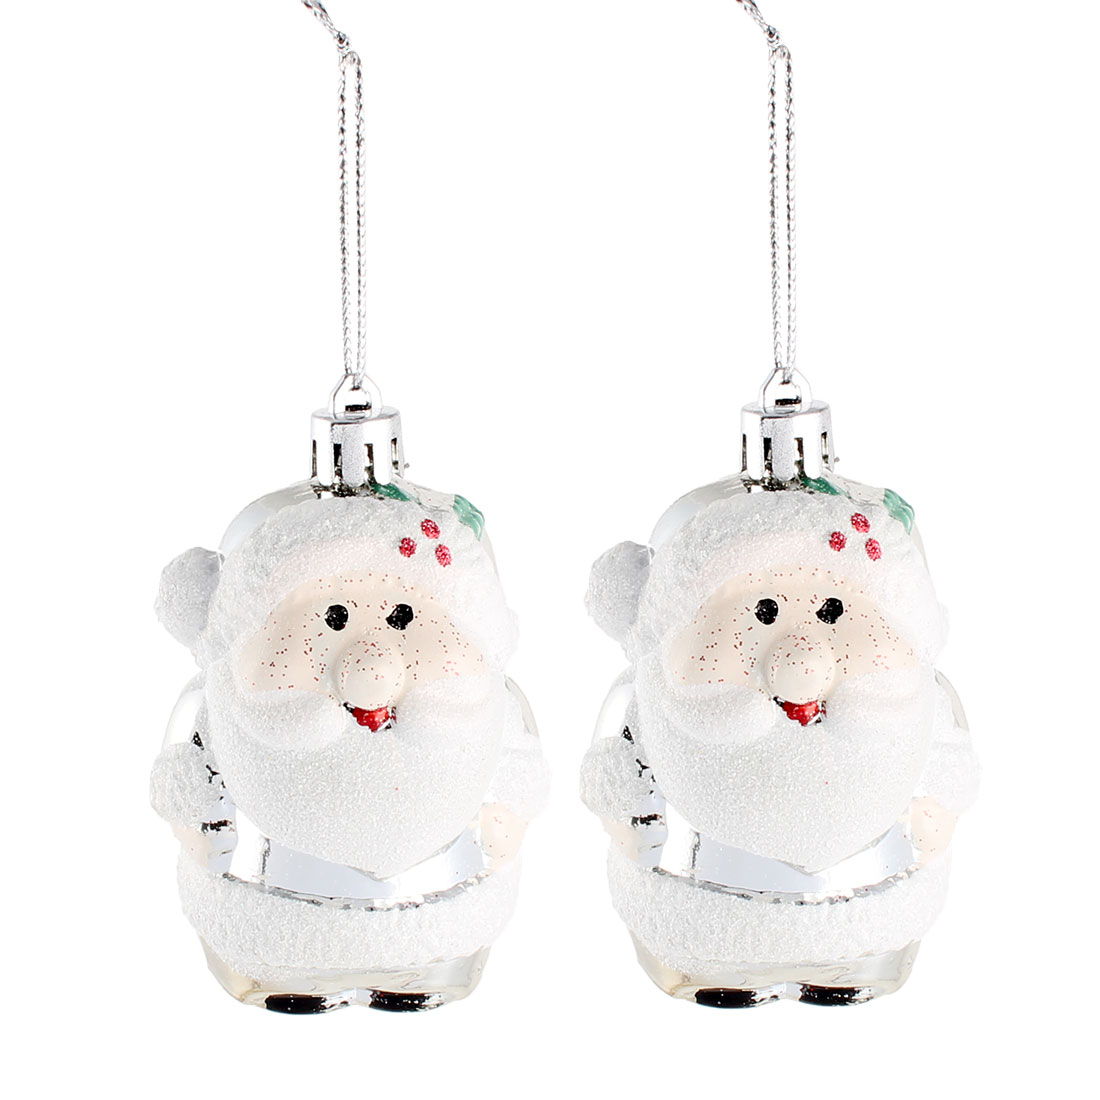 Holiday Xmas Christmas Tree Santa Claus Hanging Decor Party Ornament 2 Pcs